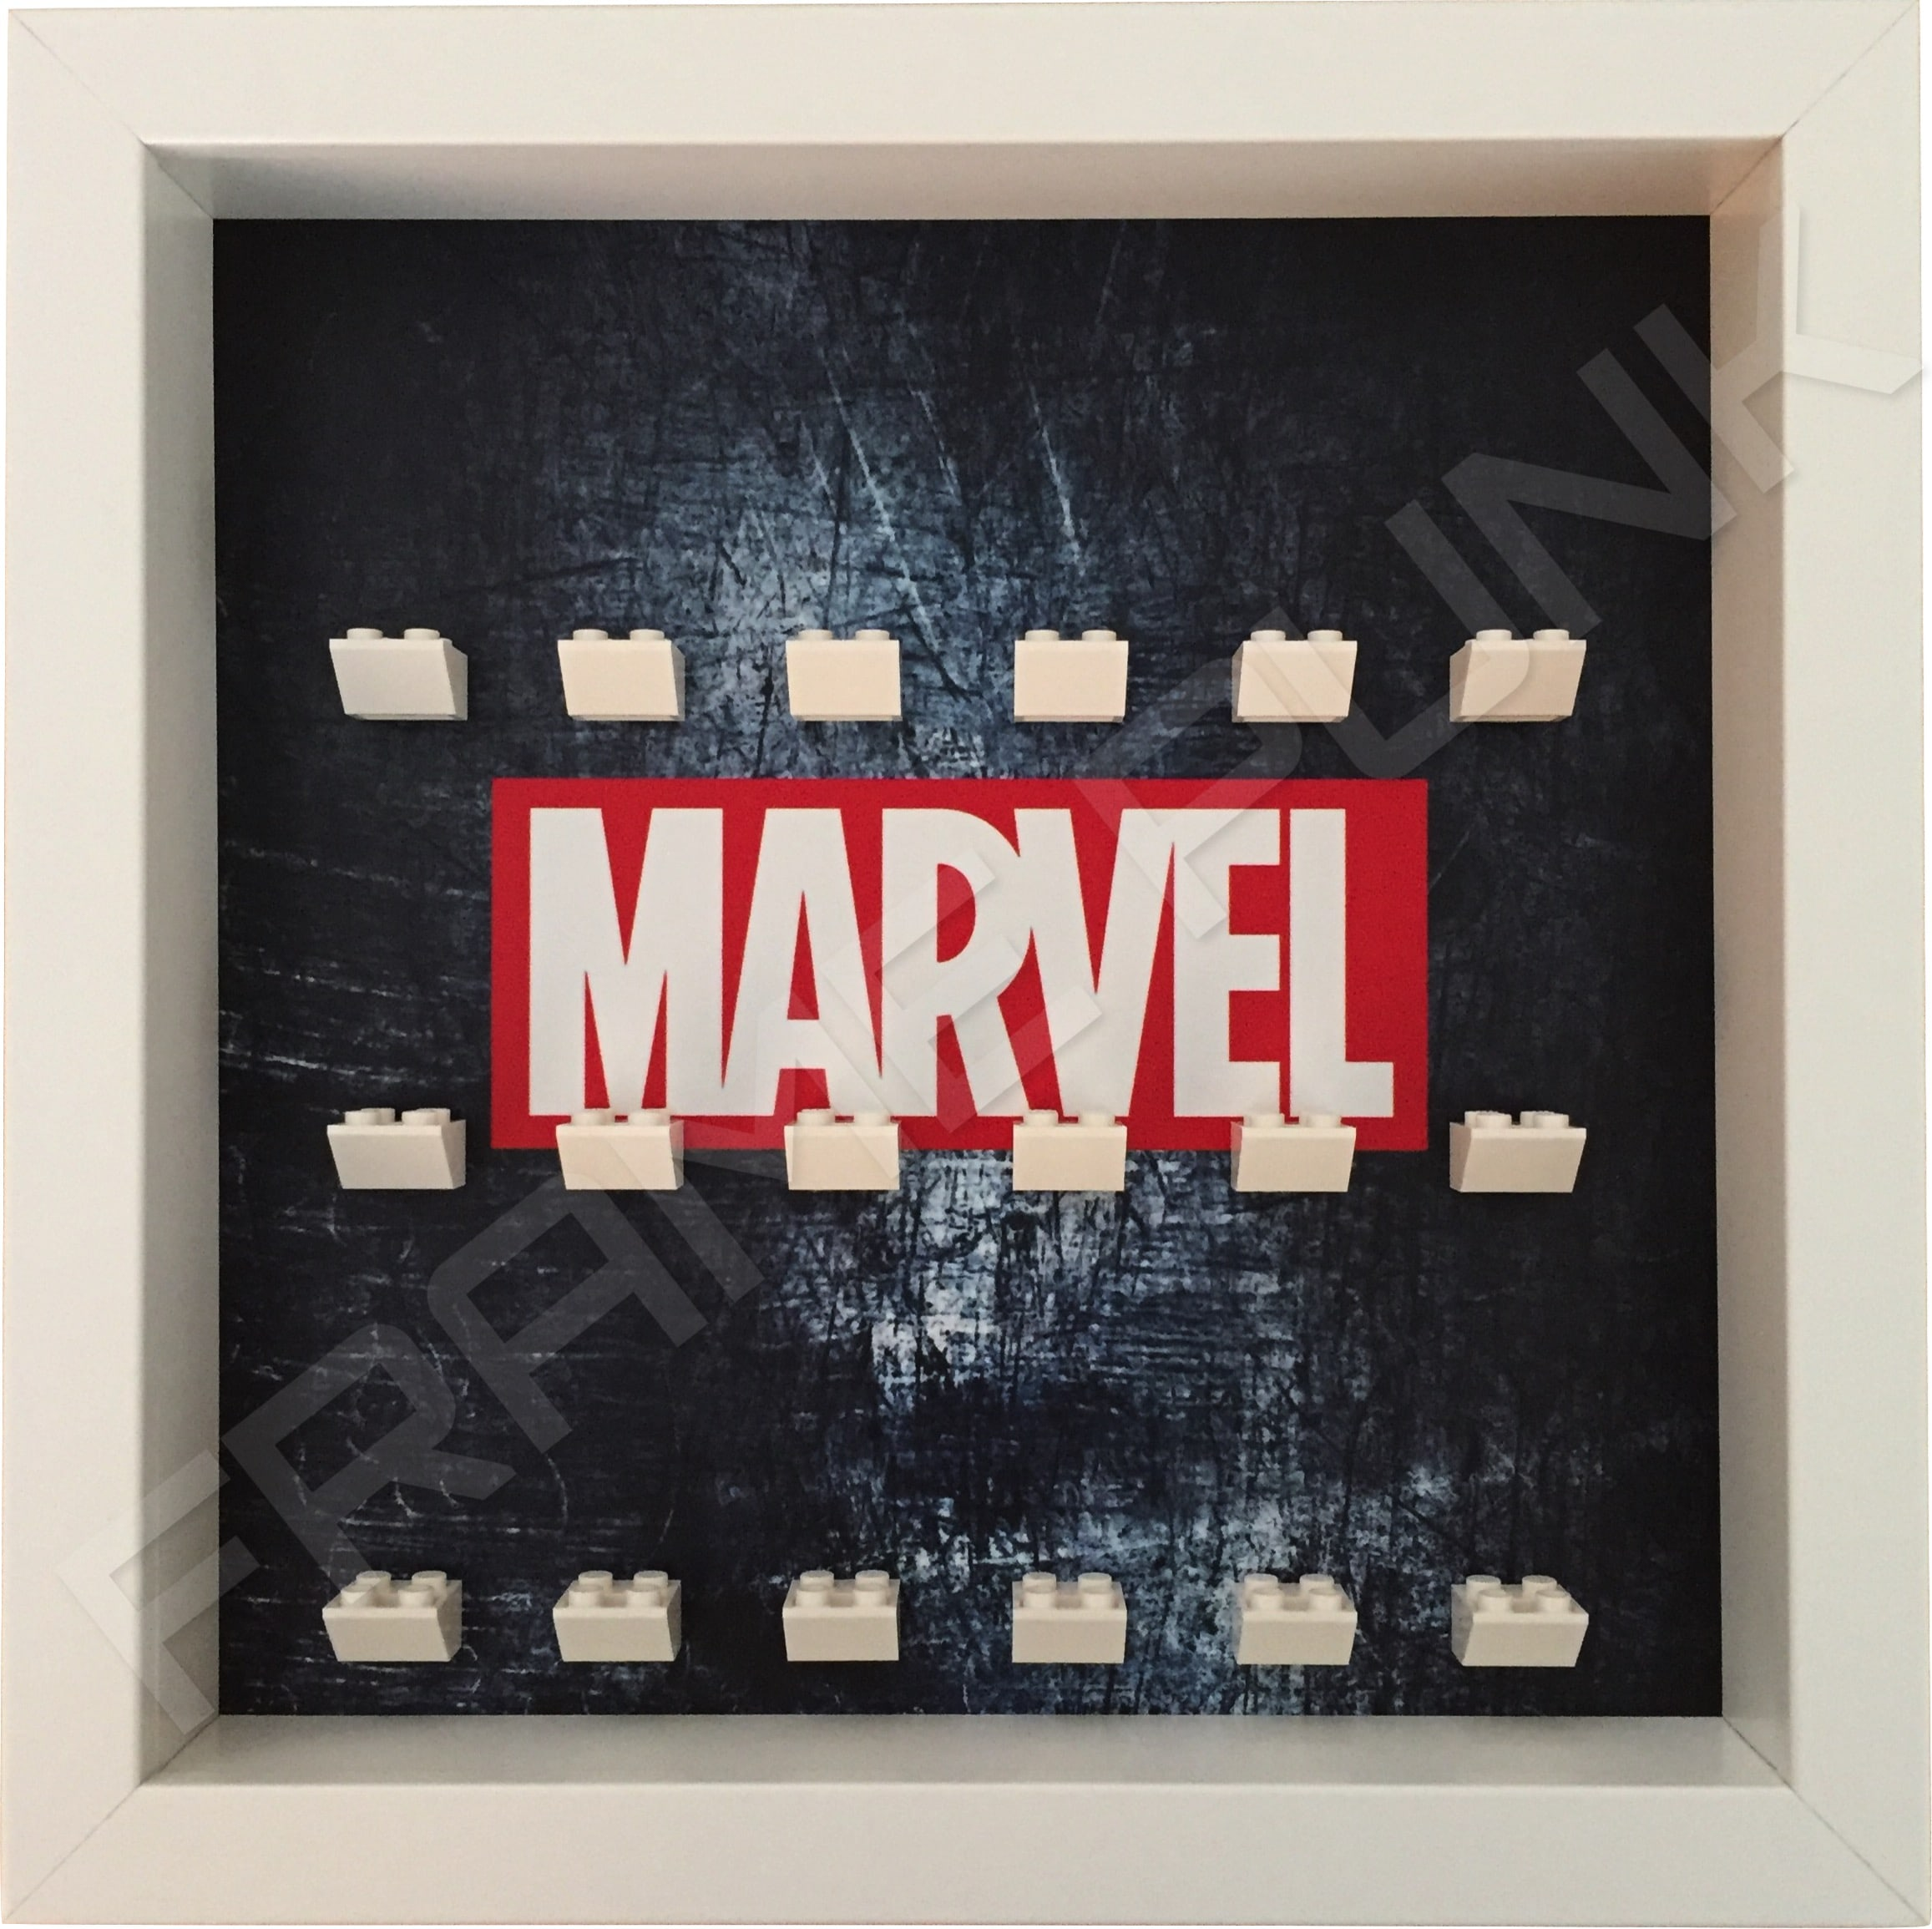 Marvel Steel White frame lego minifigures display